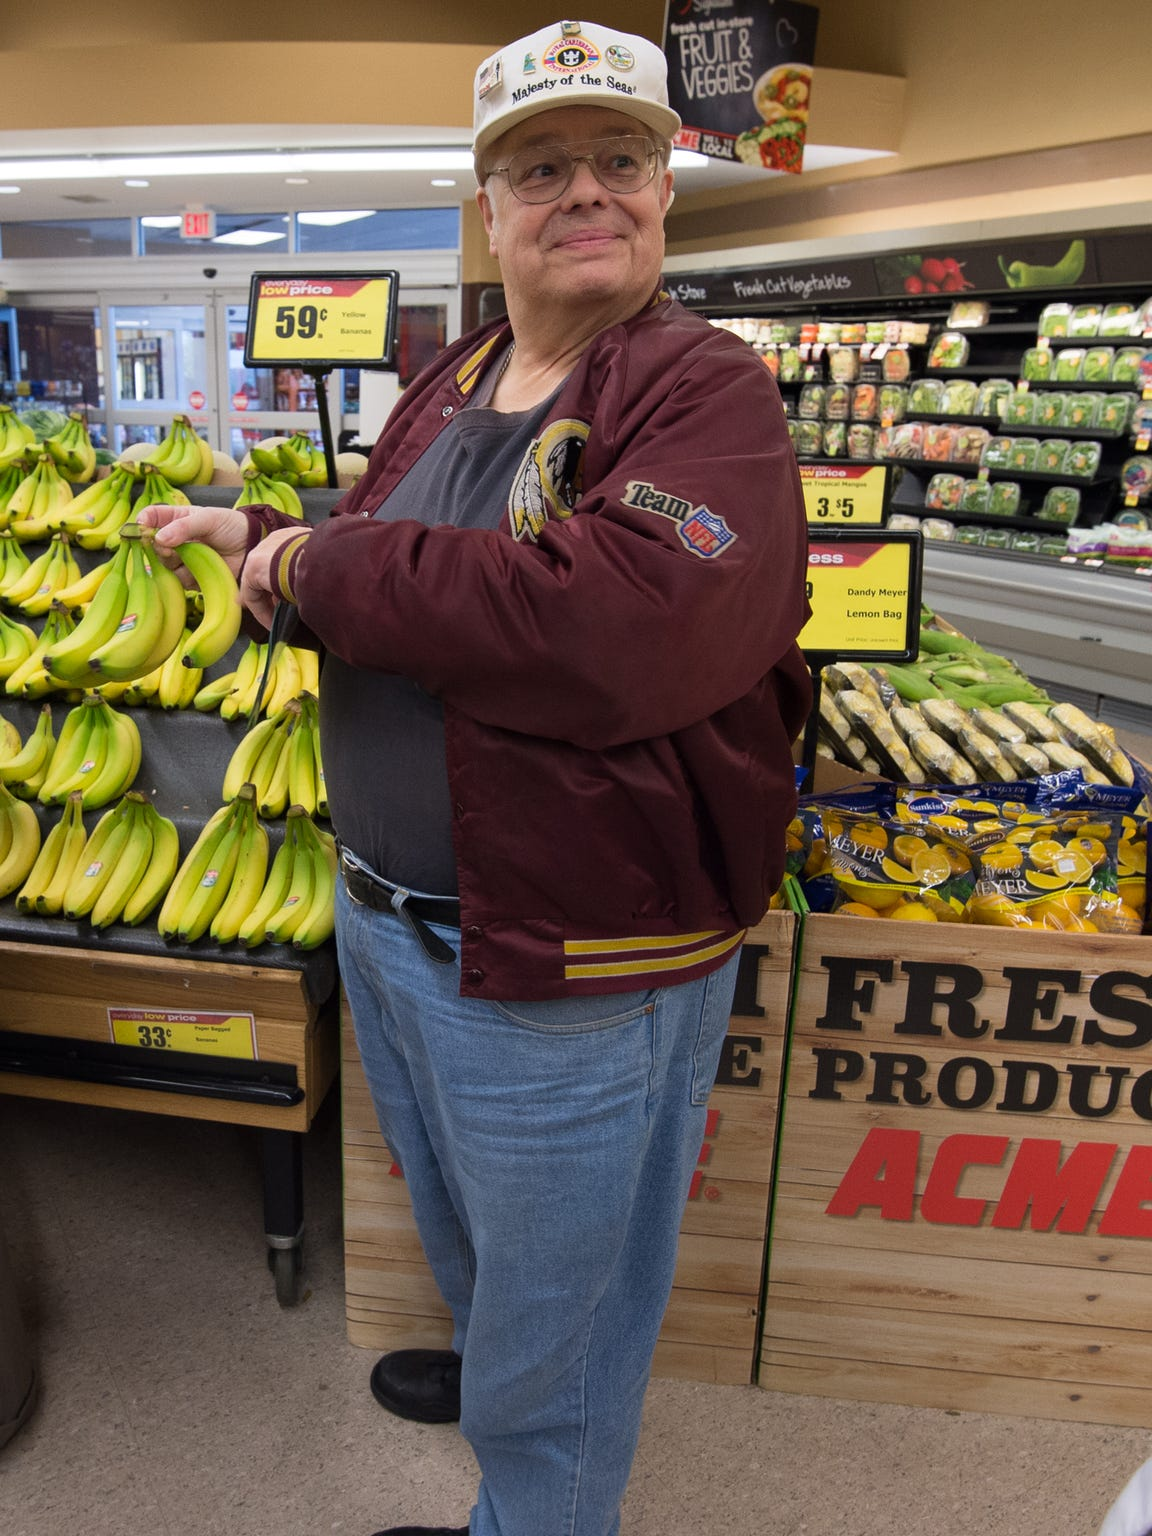 Dover resident Gary Stumpf points at bananas during a diabetes care program tour at the Dover Acme grocery store on April 9. Stumpf  was diagnosed with Type 2 diabetes more than two decades ago.